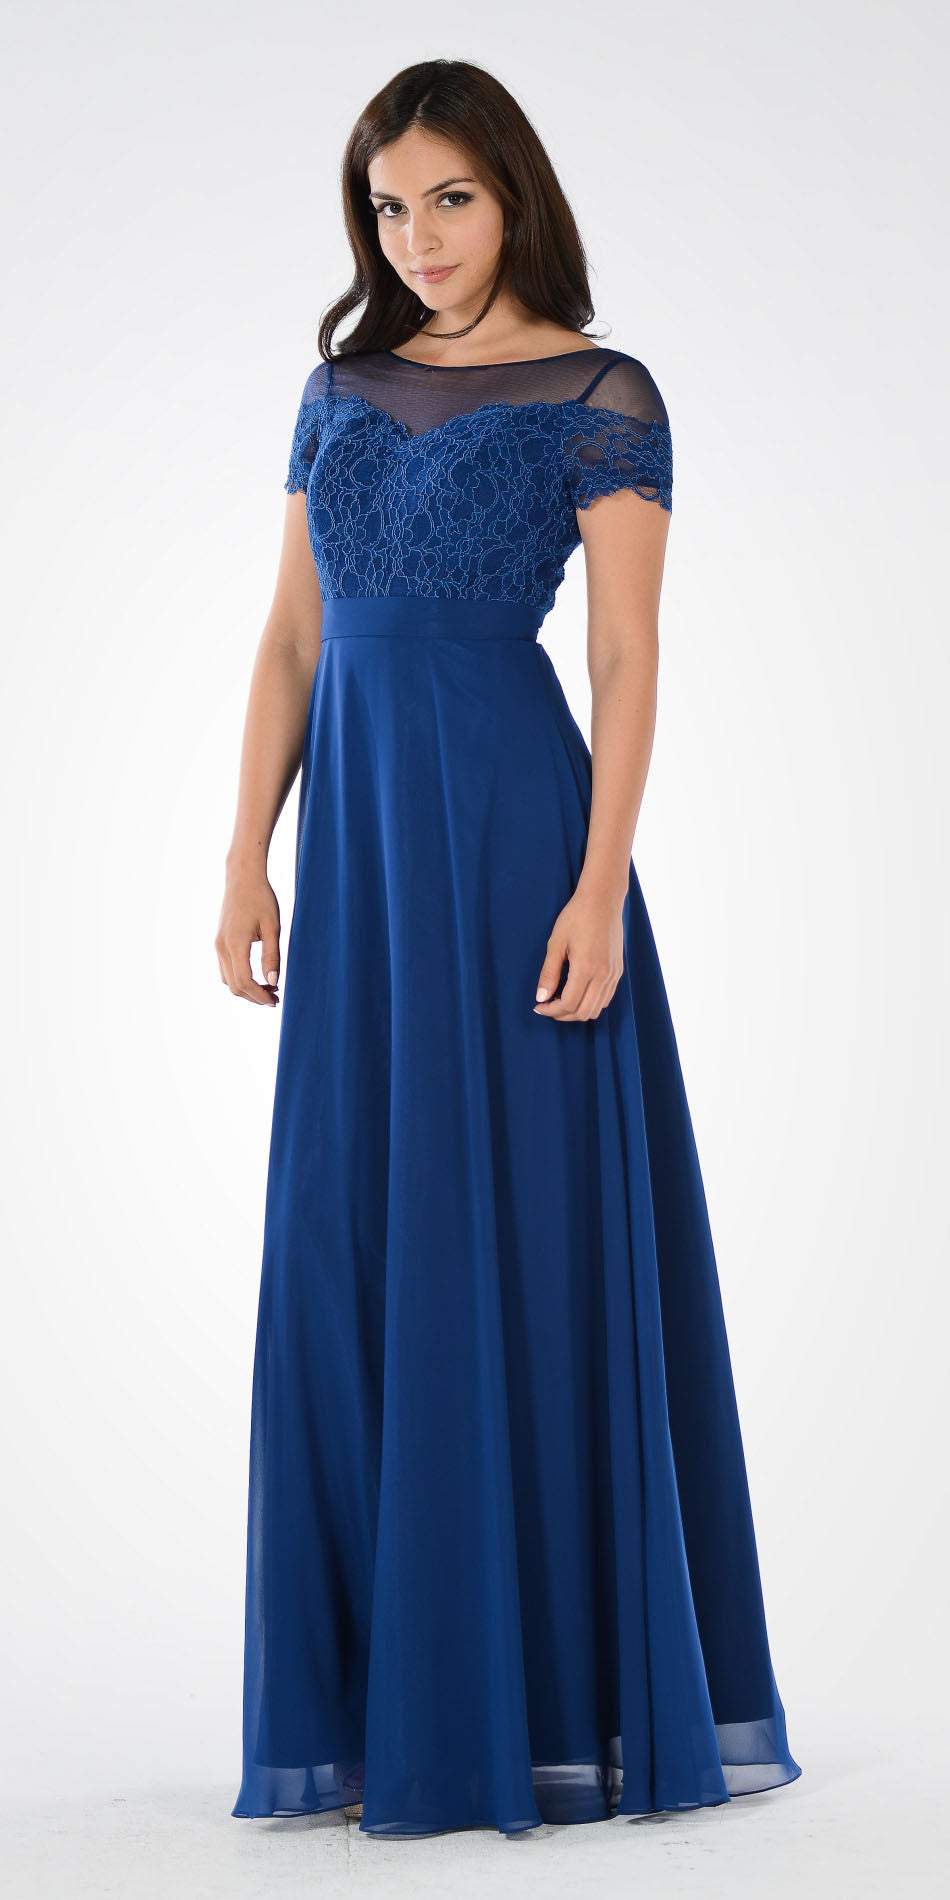 Navy Blue Short Sleeves Illusion Lace Bodice A-line Long Formal Dress